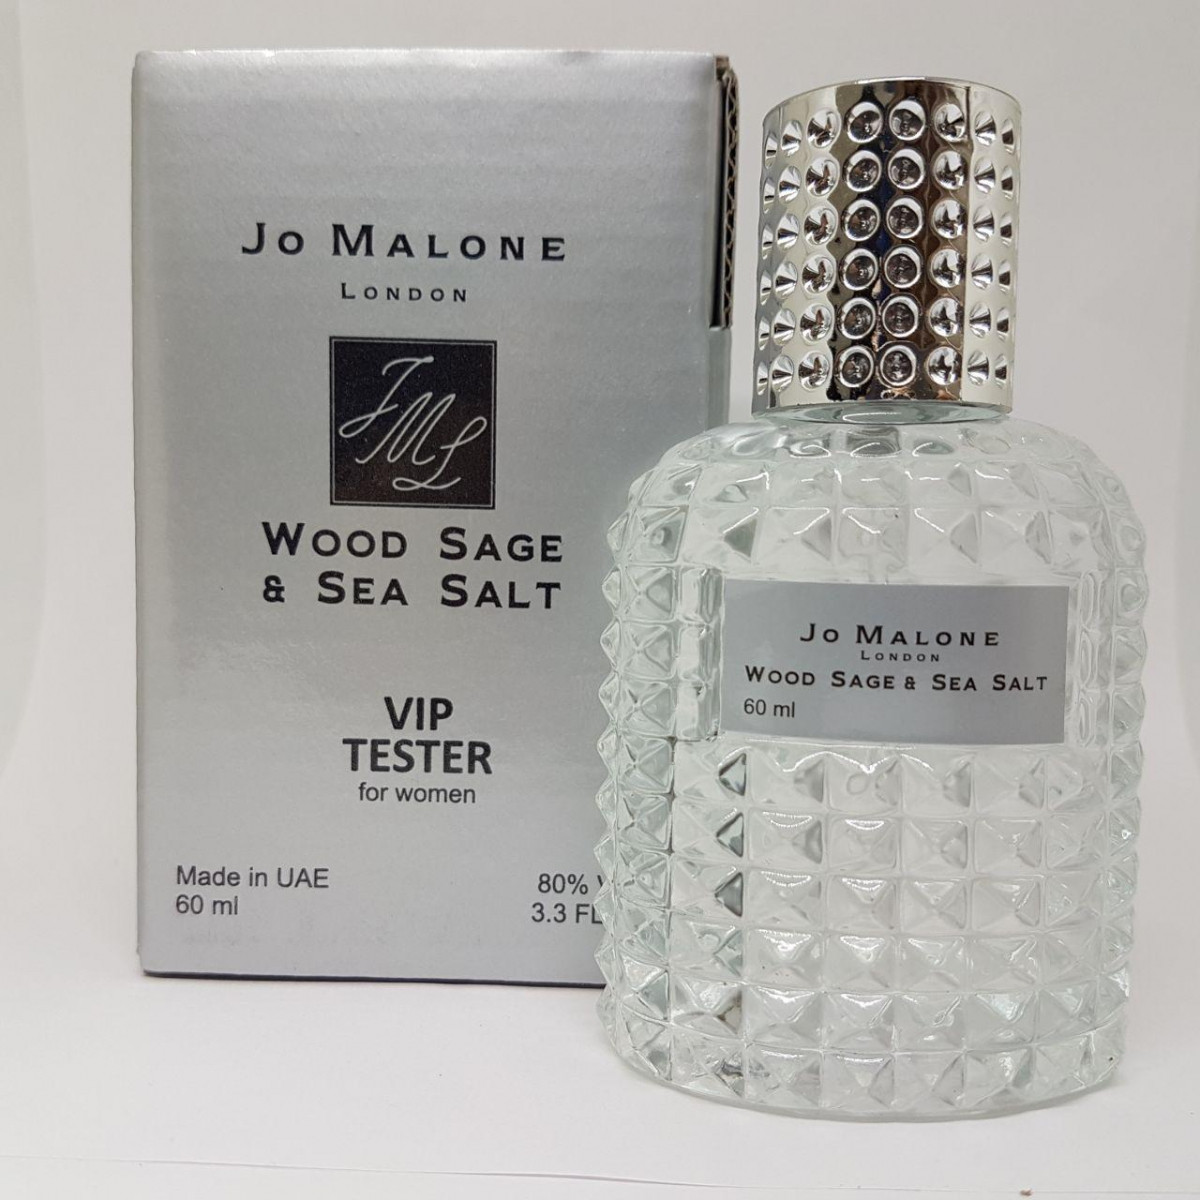 Jo Malone Wood Sage and Sea Salt - VIP Tester 60ml